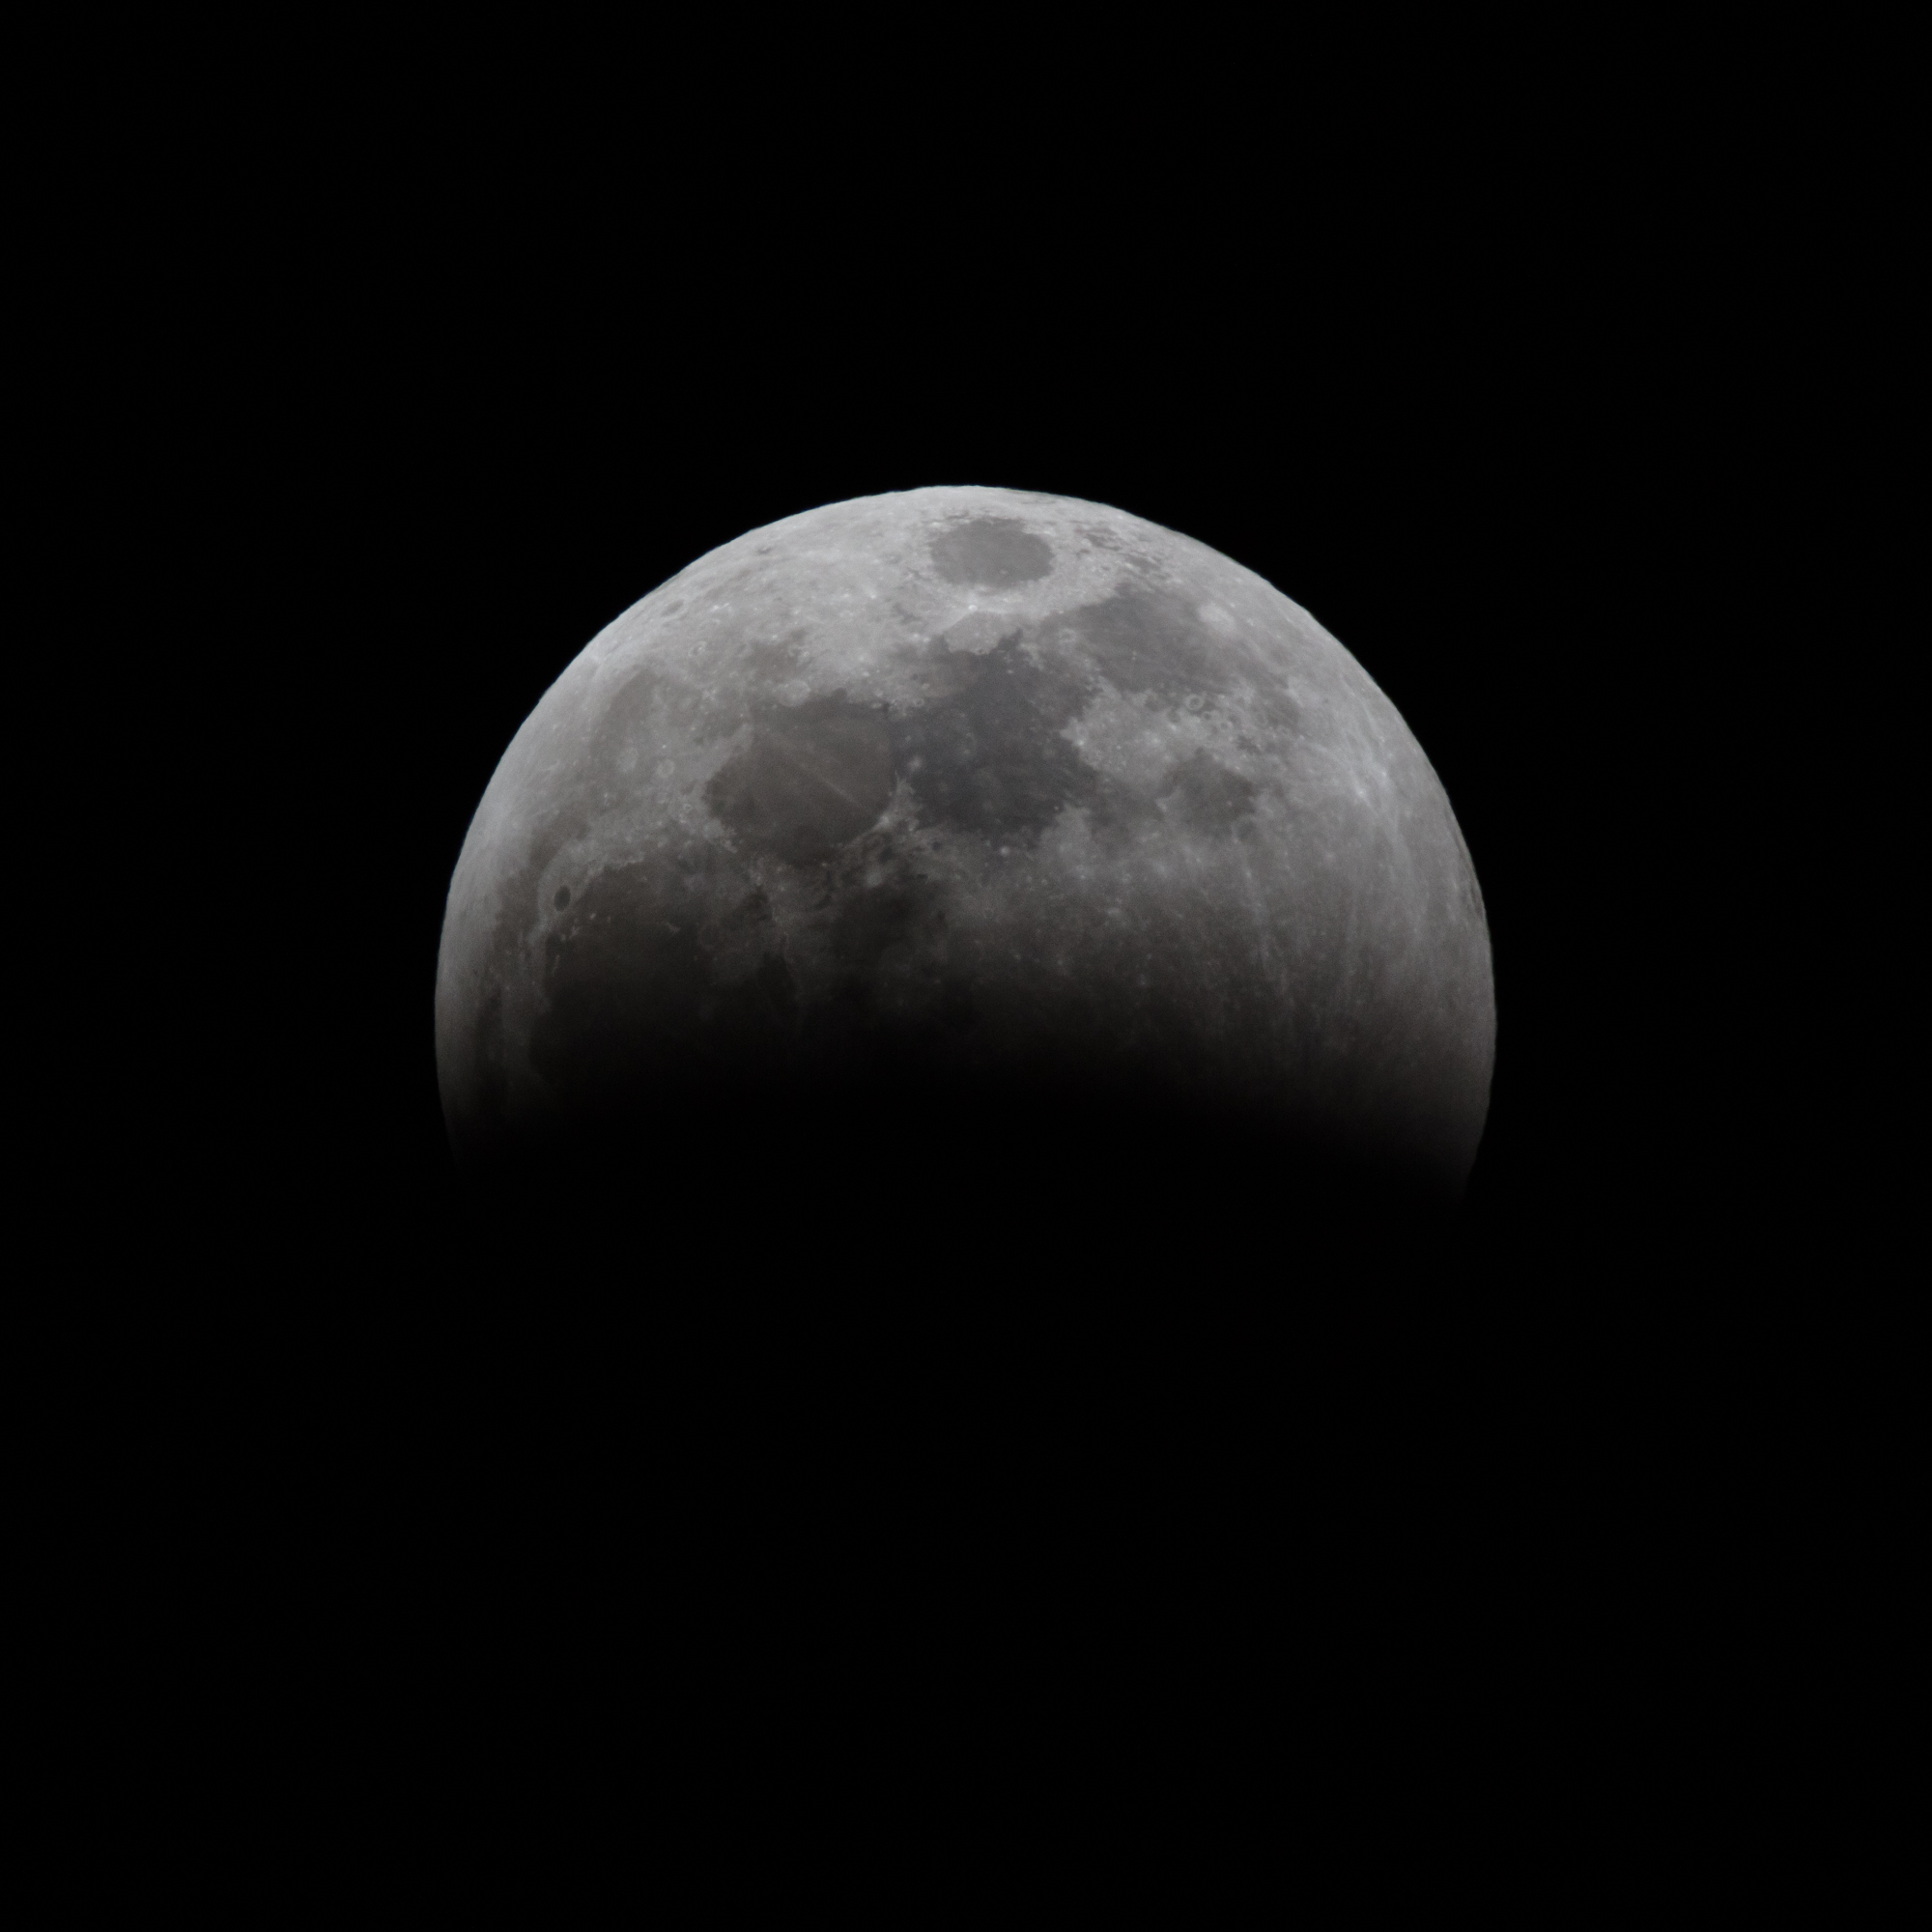 Partial eclipse moving quickly towards full lunar eclipse.